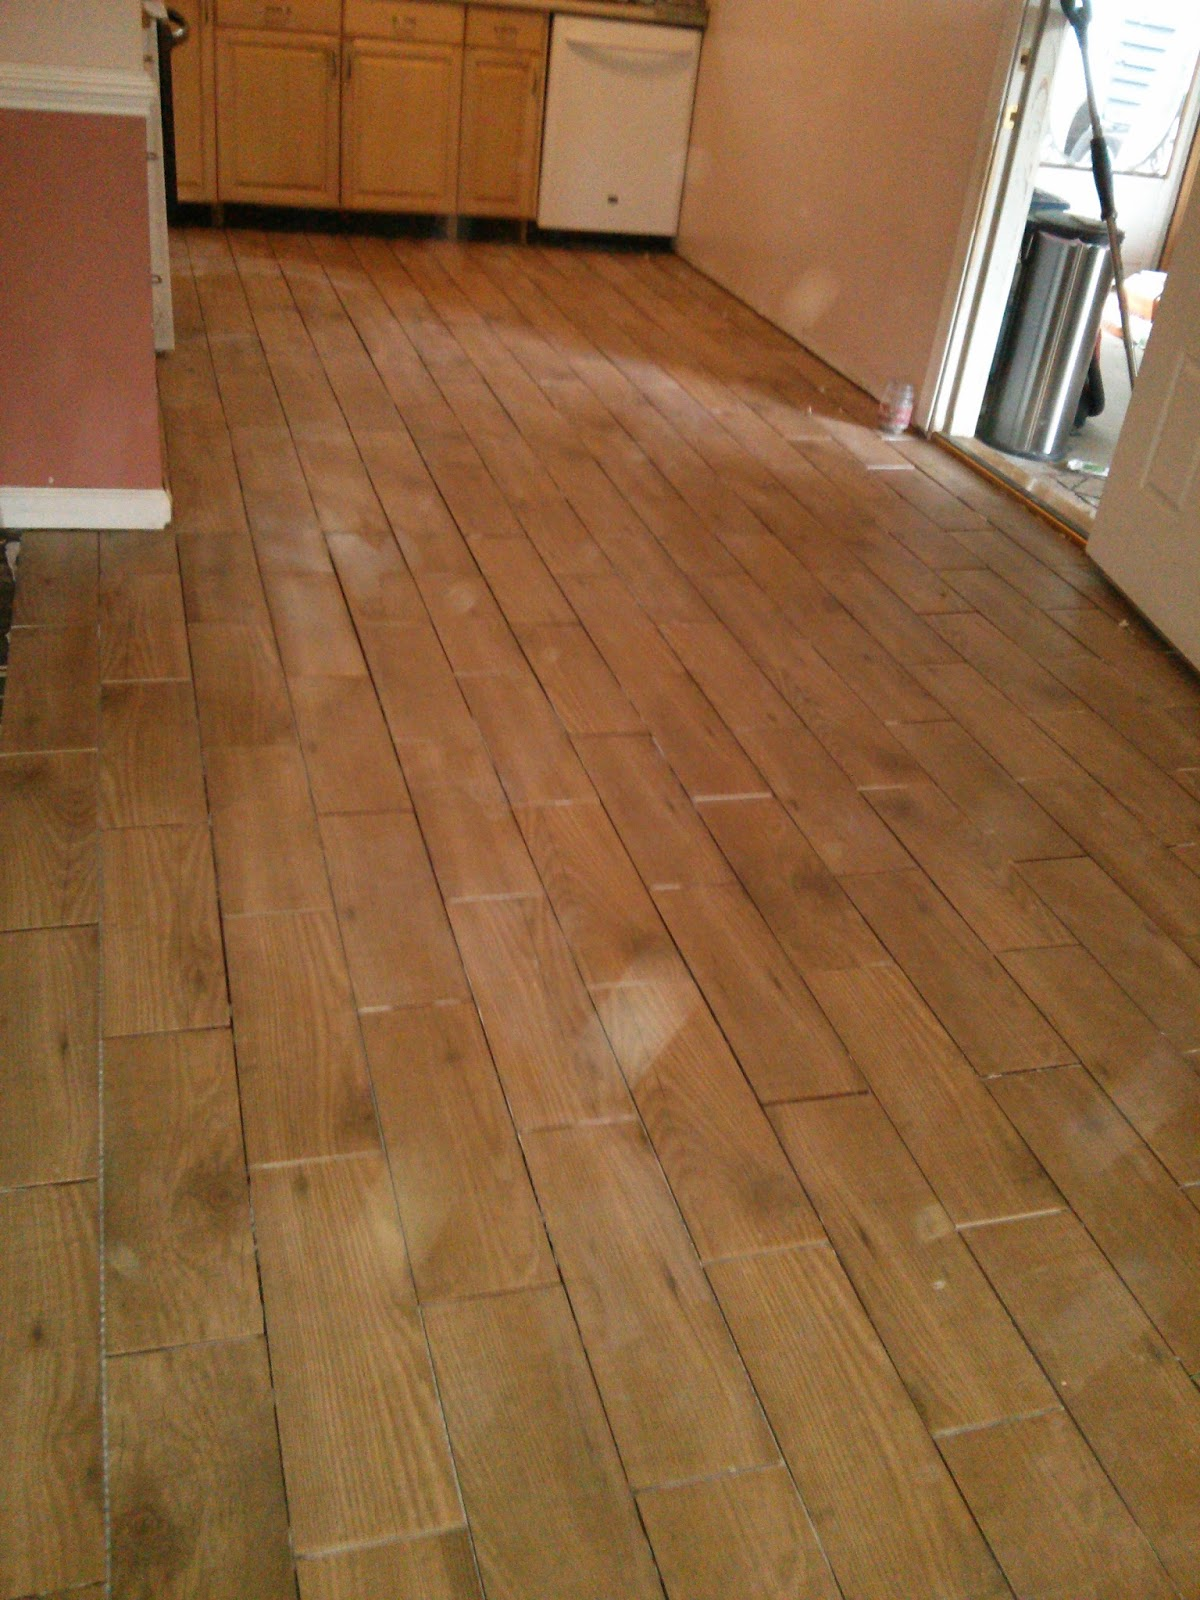 Floor Installation Photos Wood Look Porcelain Tile In